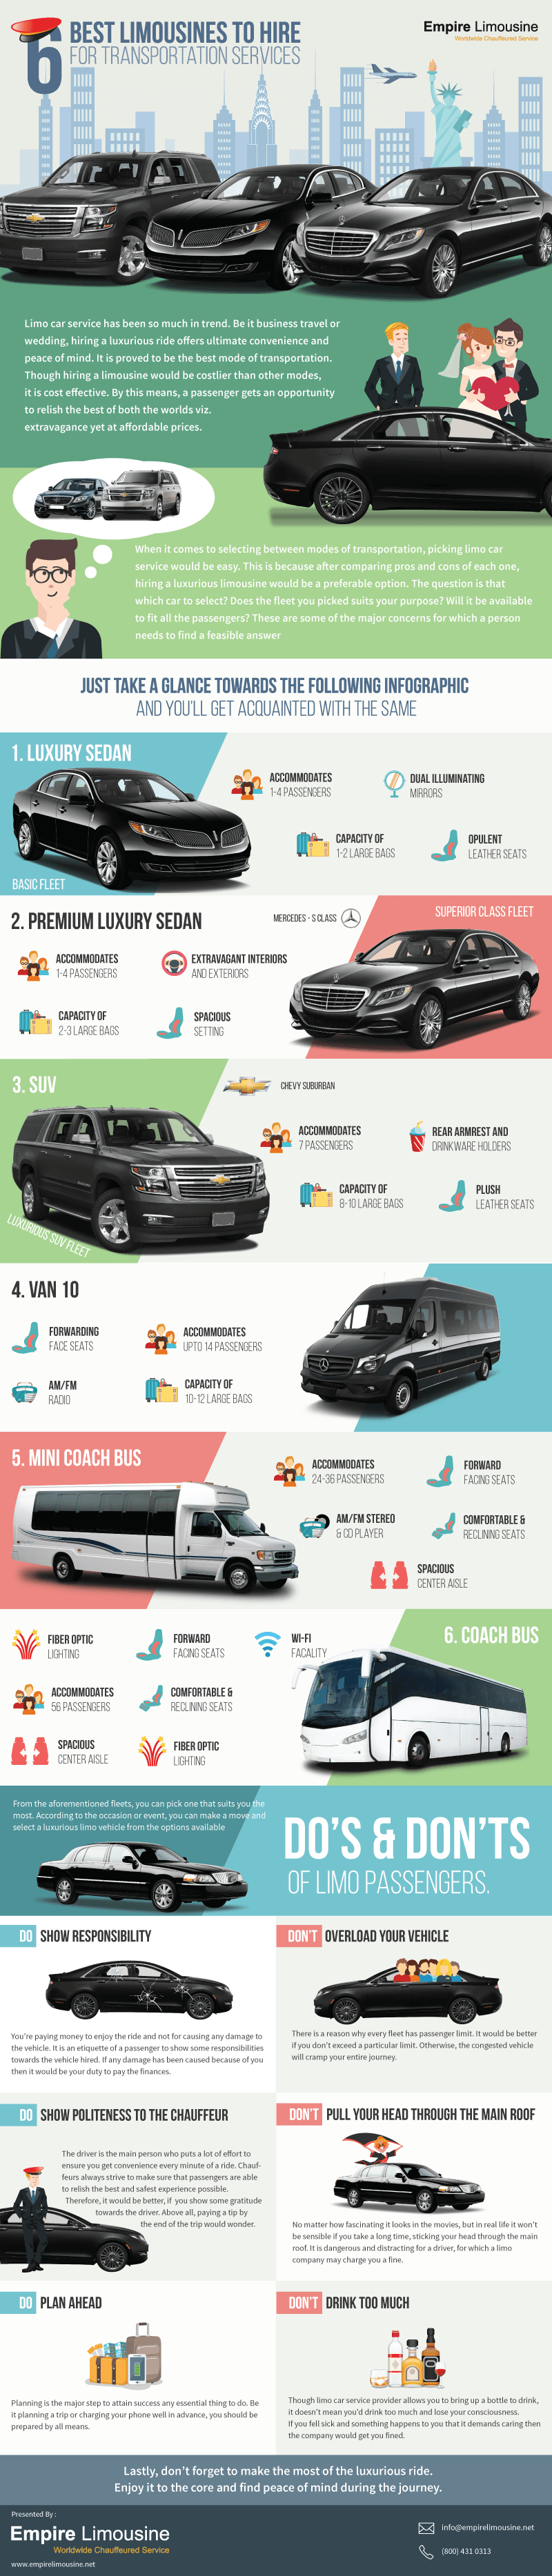 Best Limousines To Hire